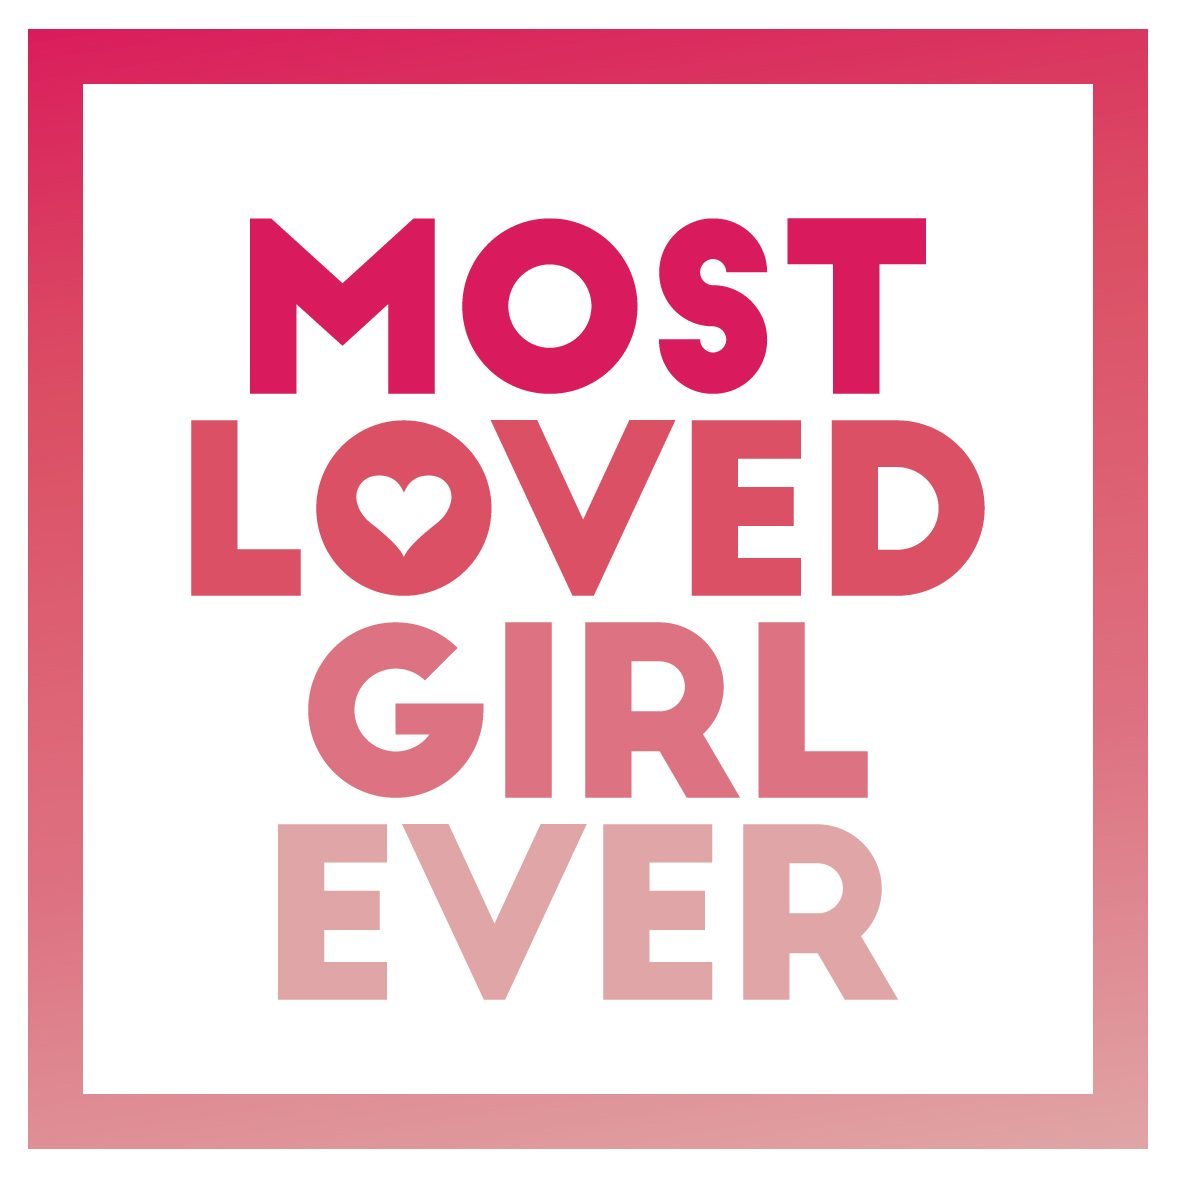 Most Loved Girl Ever